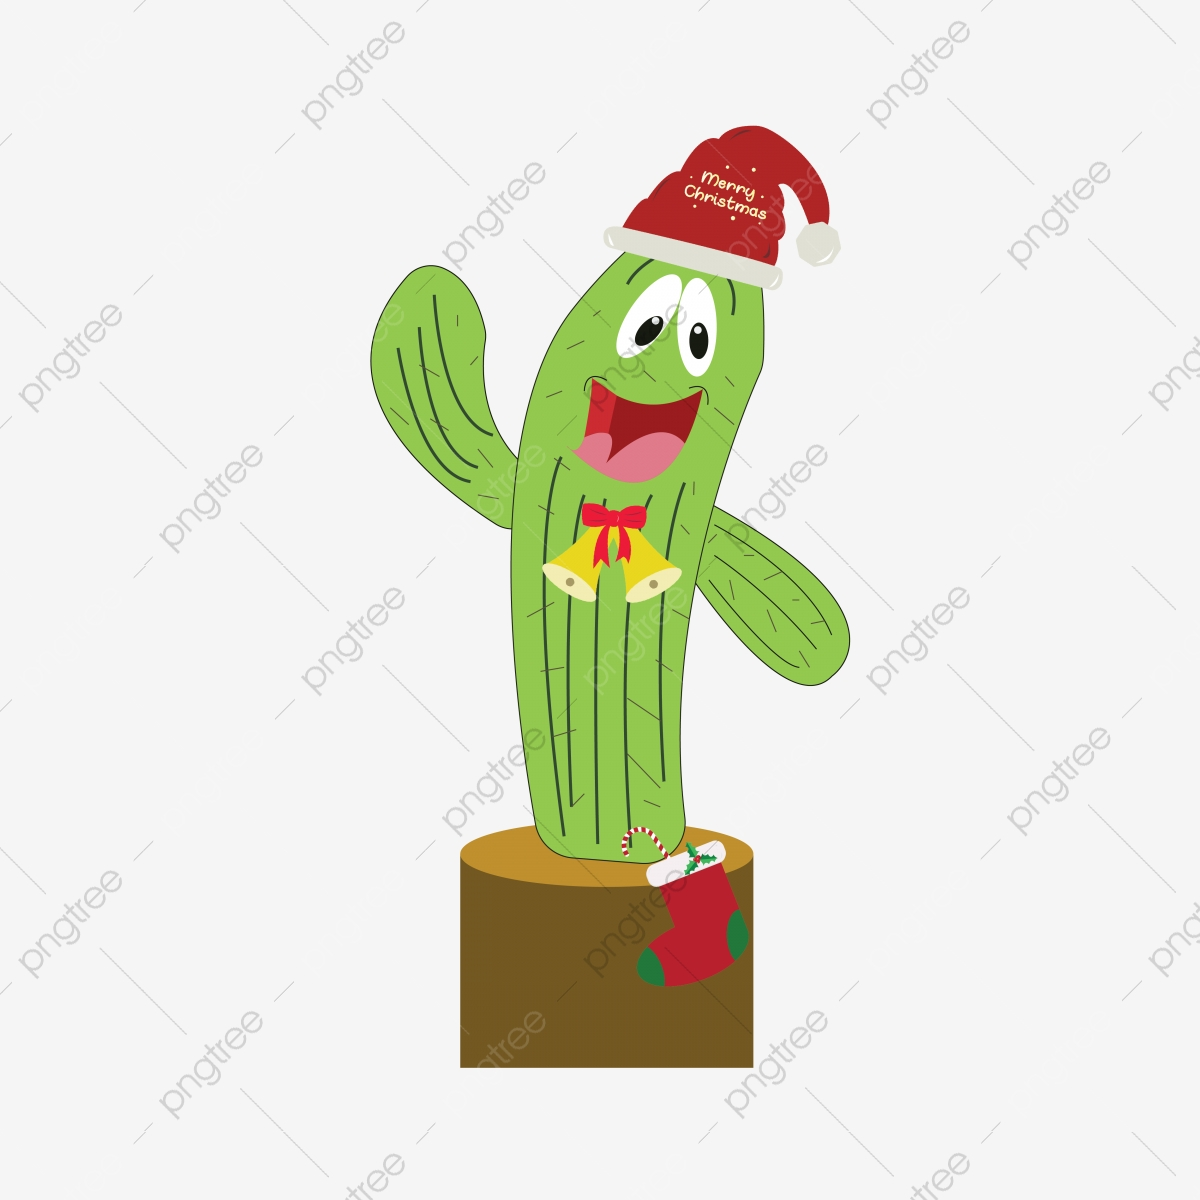 Christmas Cactus 2 By Asiful Christmas Cactus Christmas Merry Christmas Png And Vector With Transparent Background For Free Download